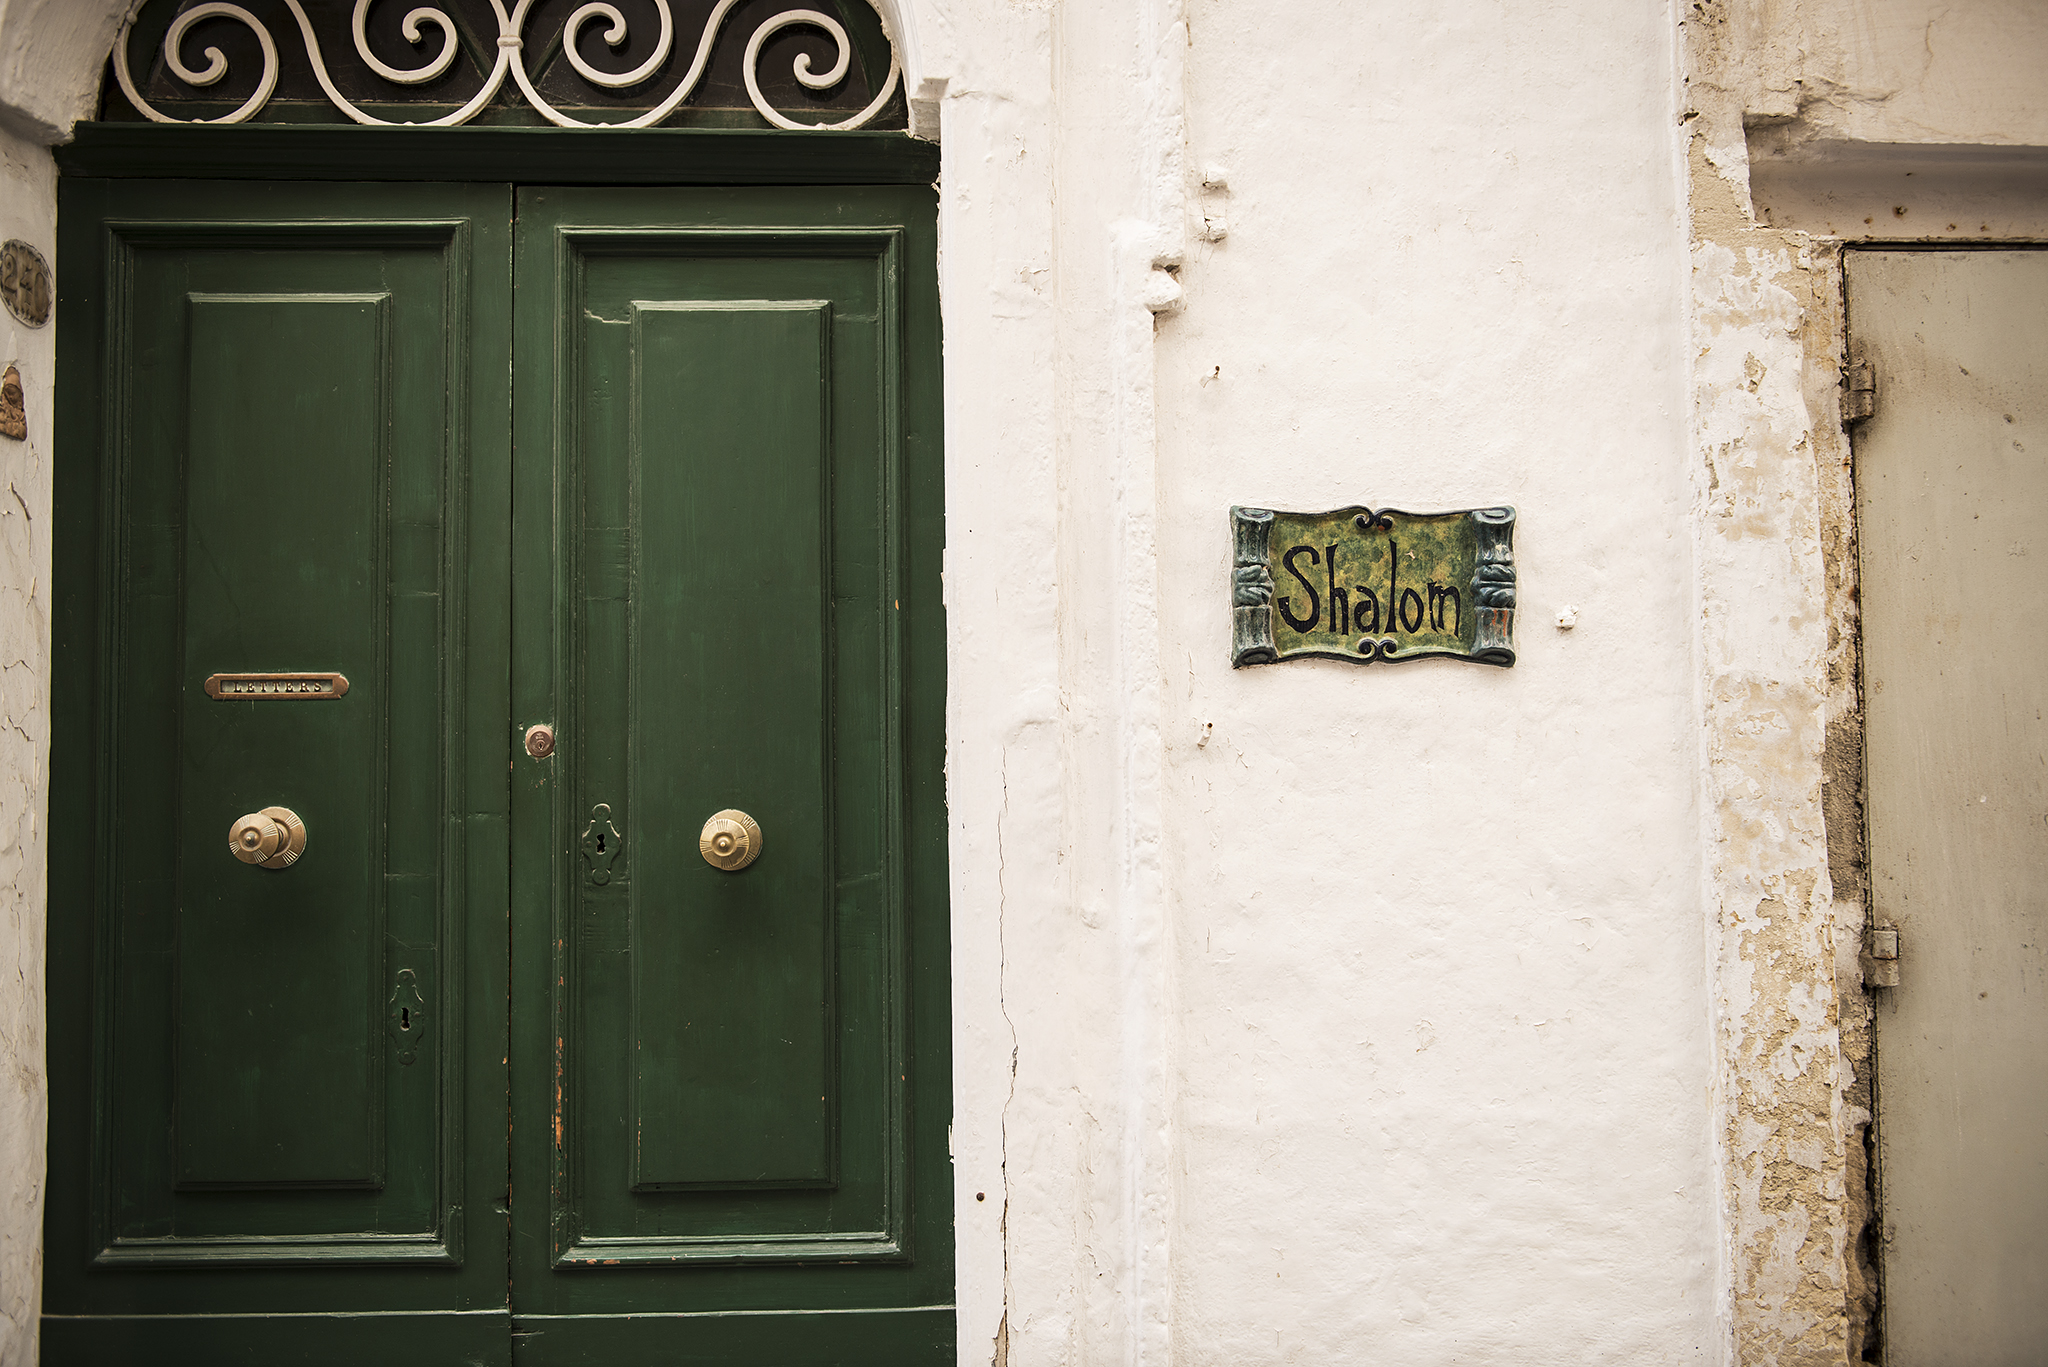 Green door, white wall and green sign